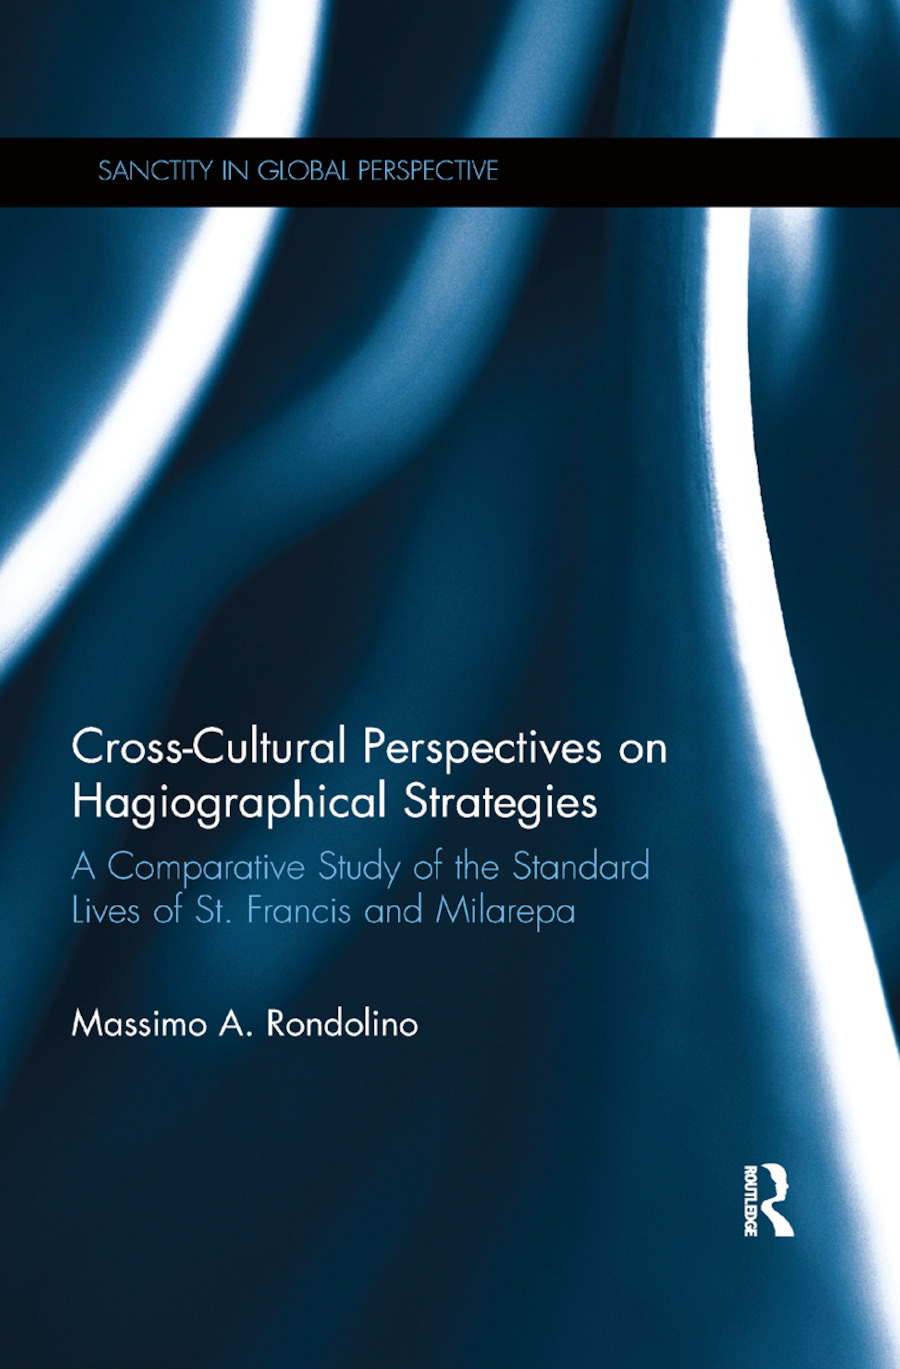 Cross-Cultural Perspectives on Hagiographical Strategies: A Comparative Study of the Standard Lives of St. Francis and Milarepa book cover